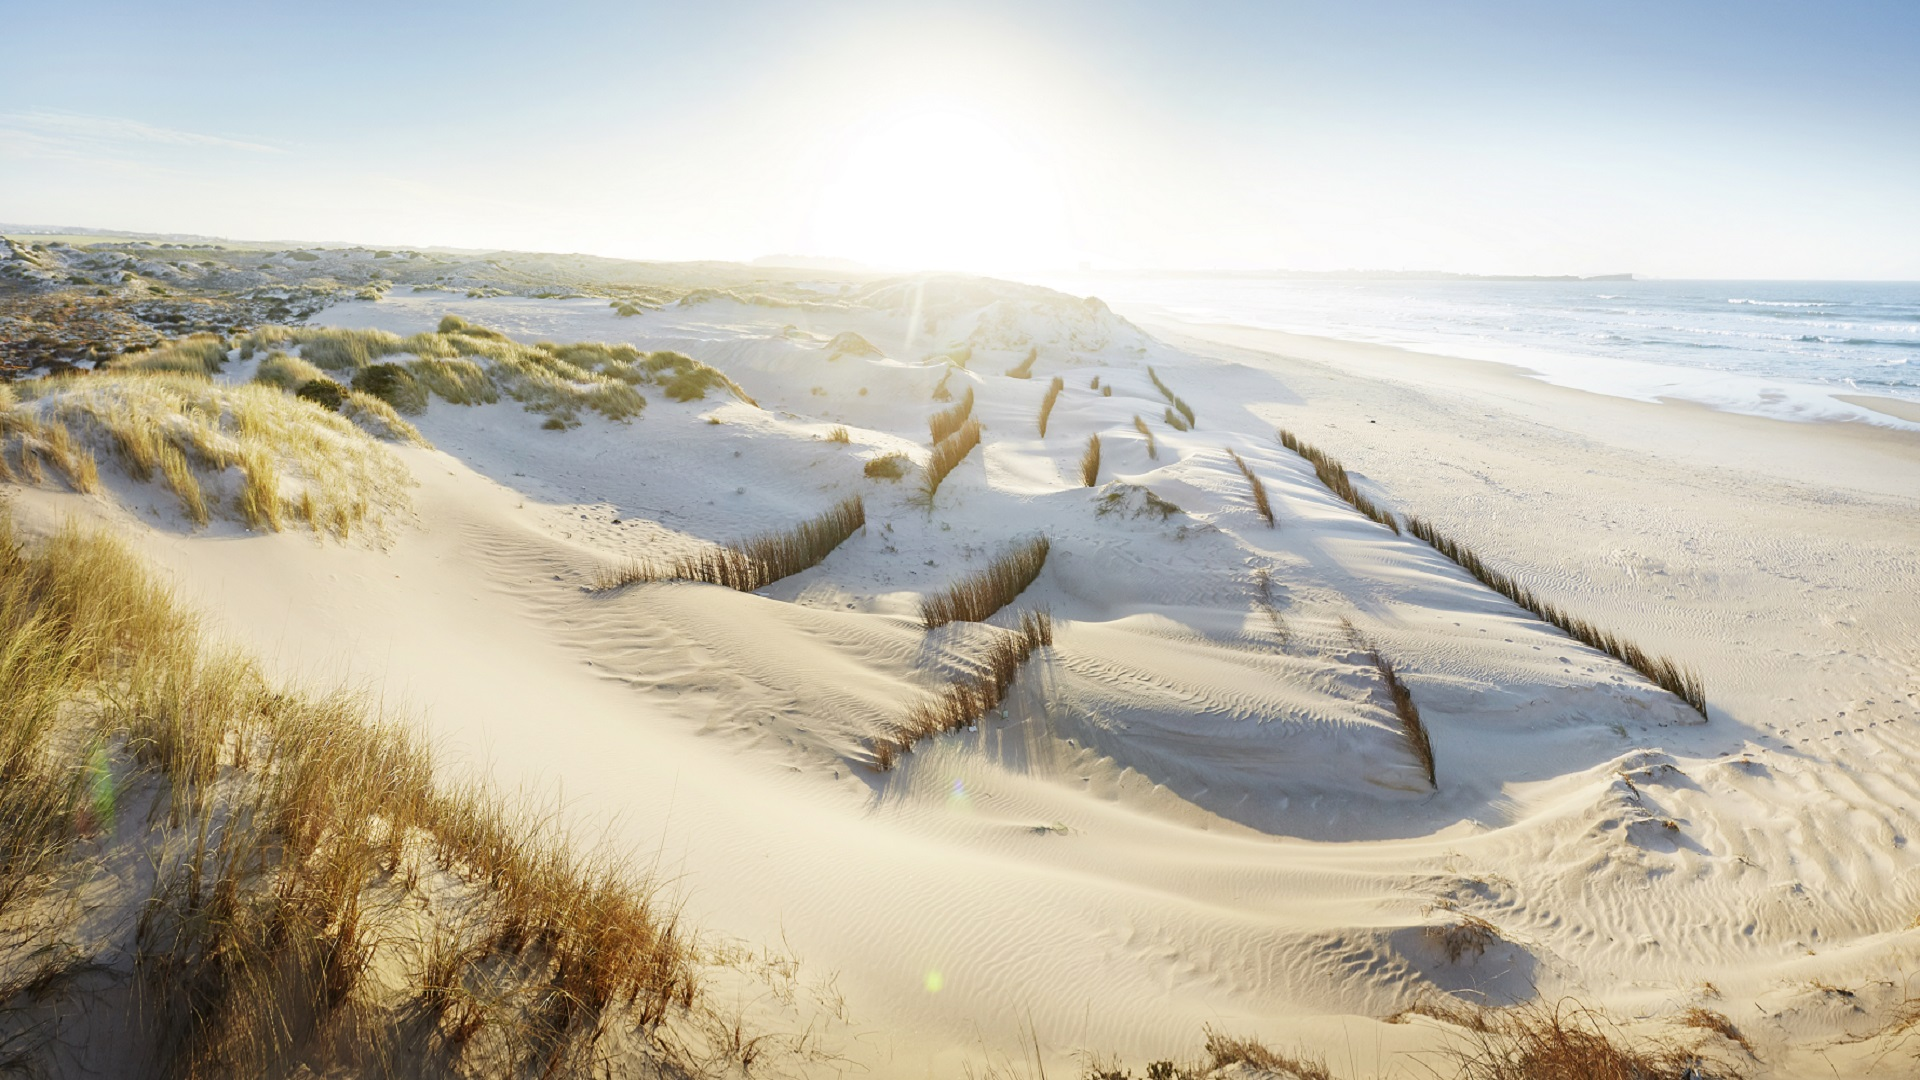 Dunes pace themselves to maximise separation